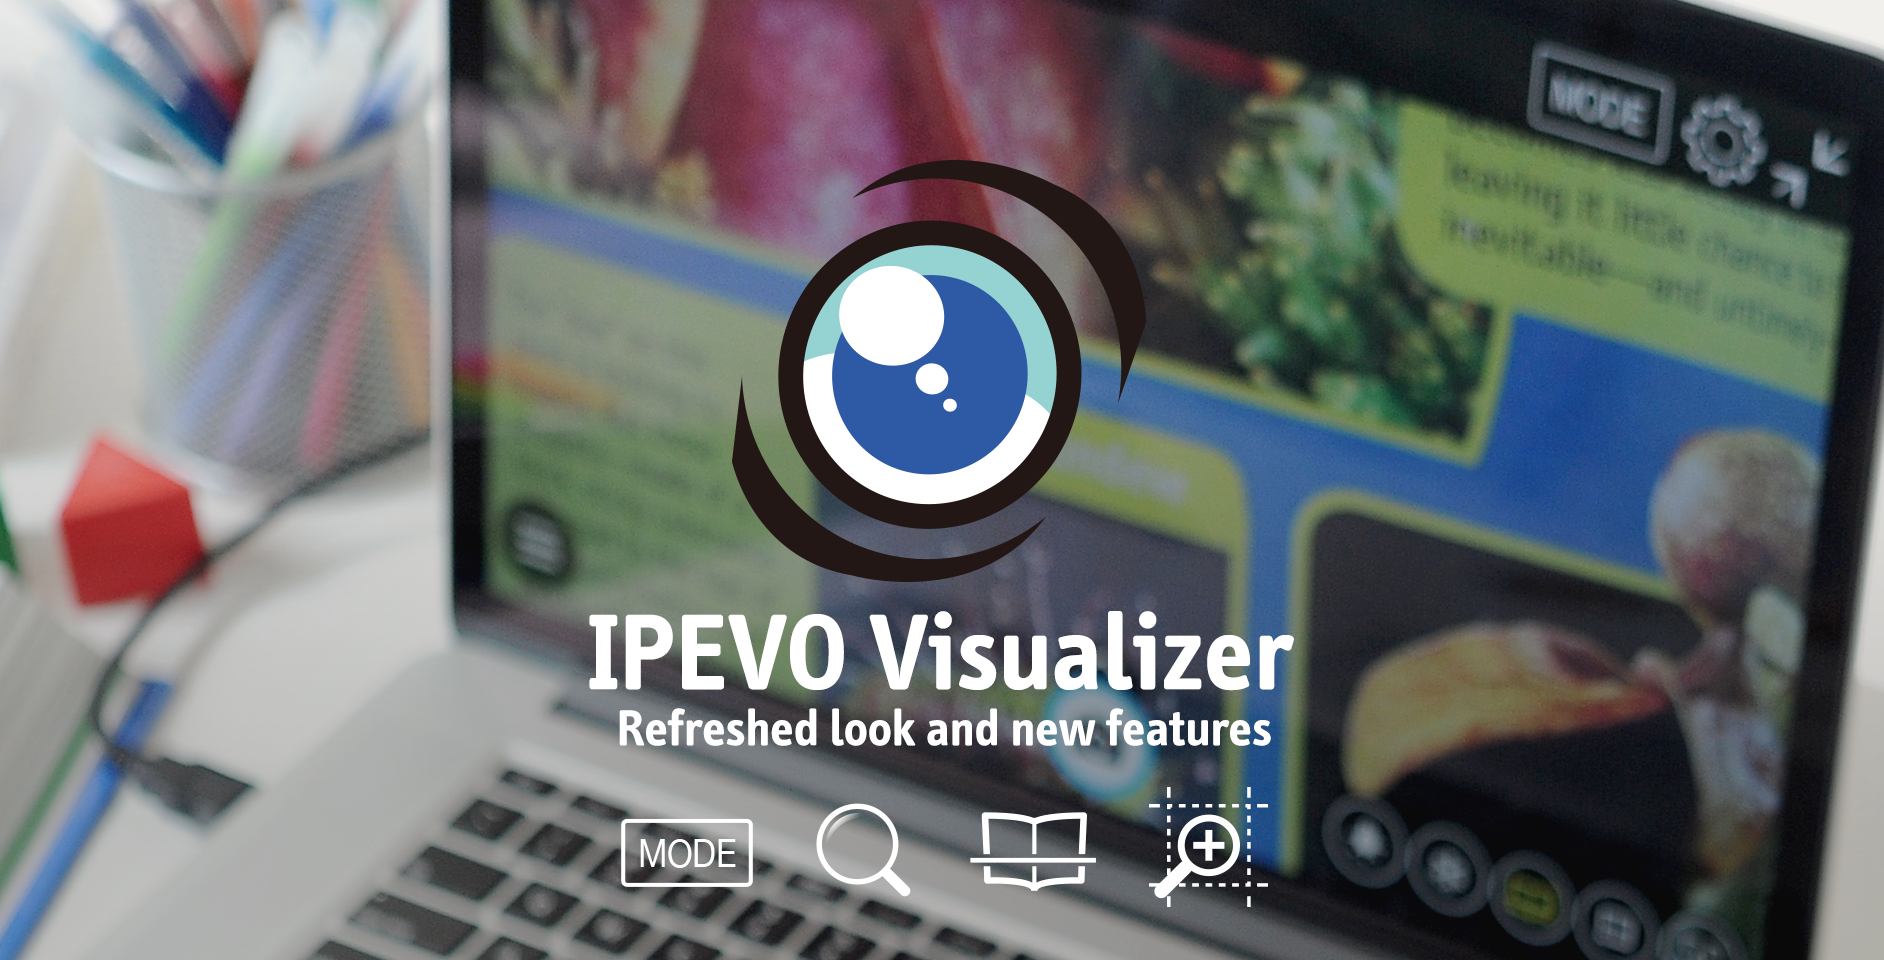 Check out the refreshed look and new features of IPEVO Visualizer — Larger User Interface, Zoom, Magnify, and Reading Aids